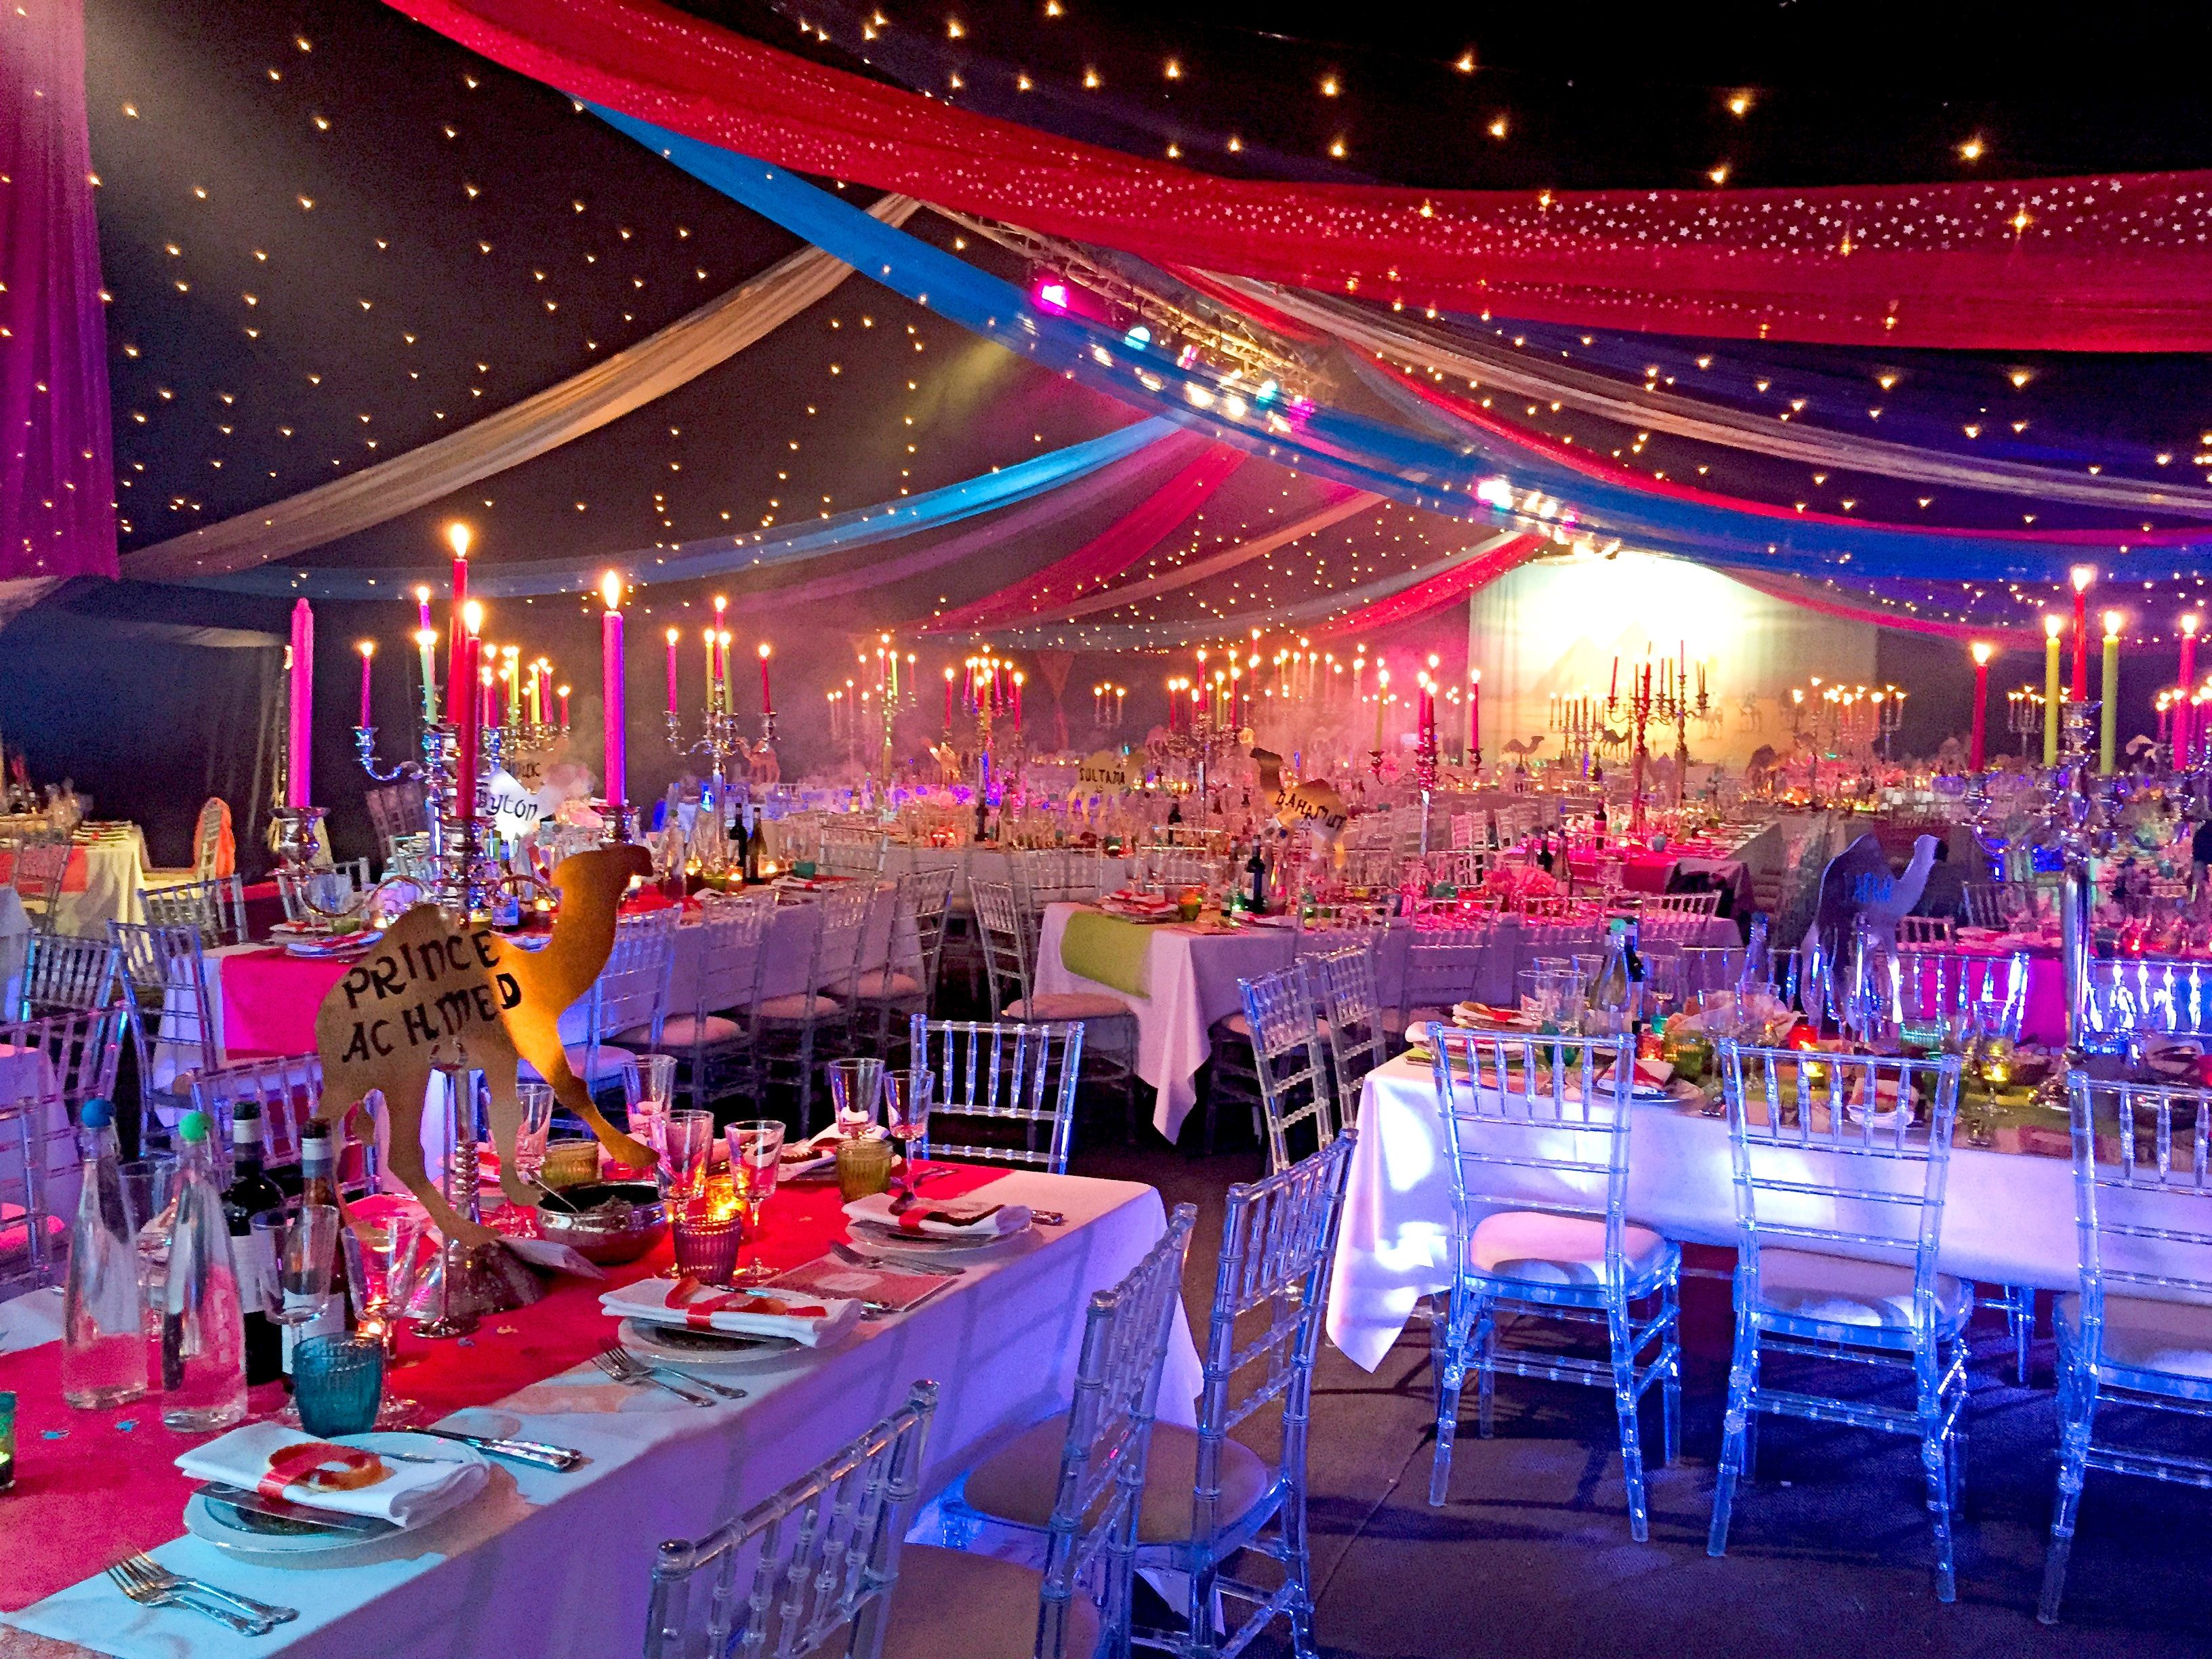 Bespoke party planners arabian nights theme charity ball for Arabian nights decoration